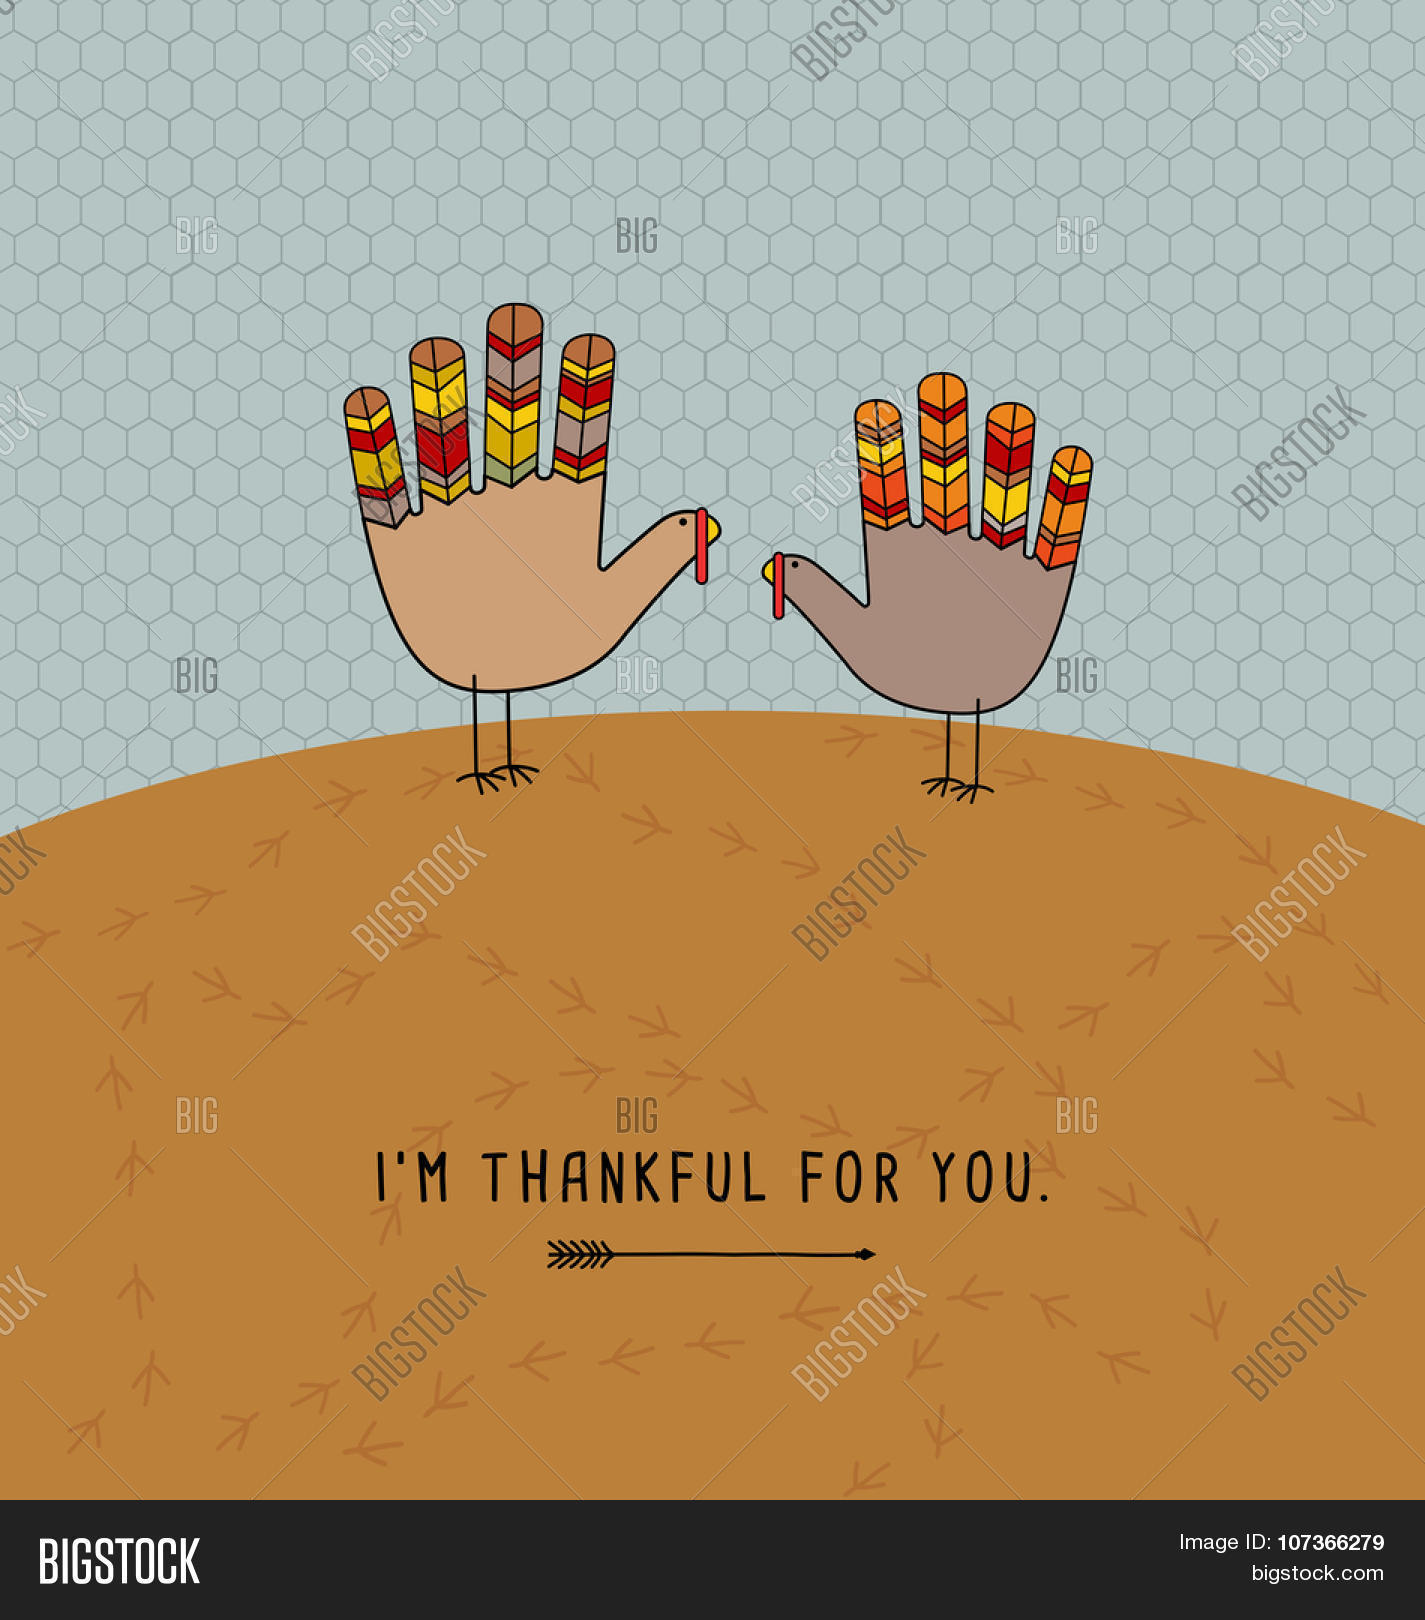 Thanksgiving card vector photo free trial bigstock thanksgiving card design with theme message and cute hand print turkeys m4hsunfo